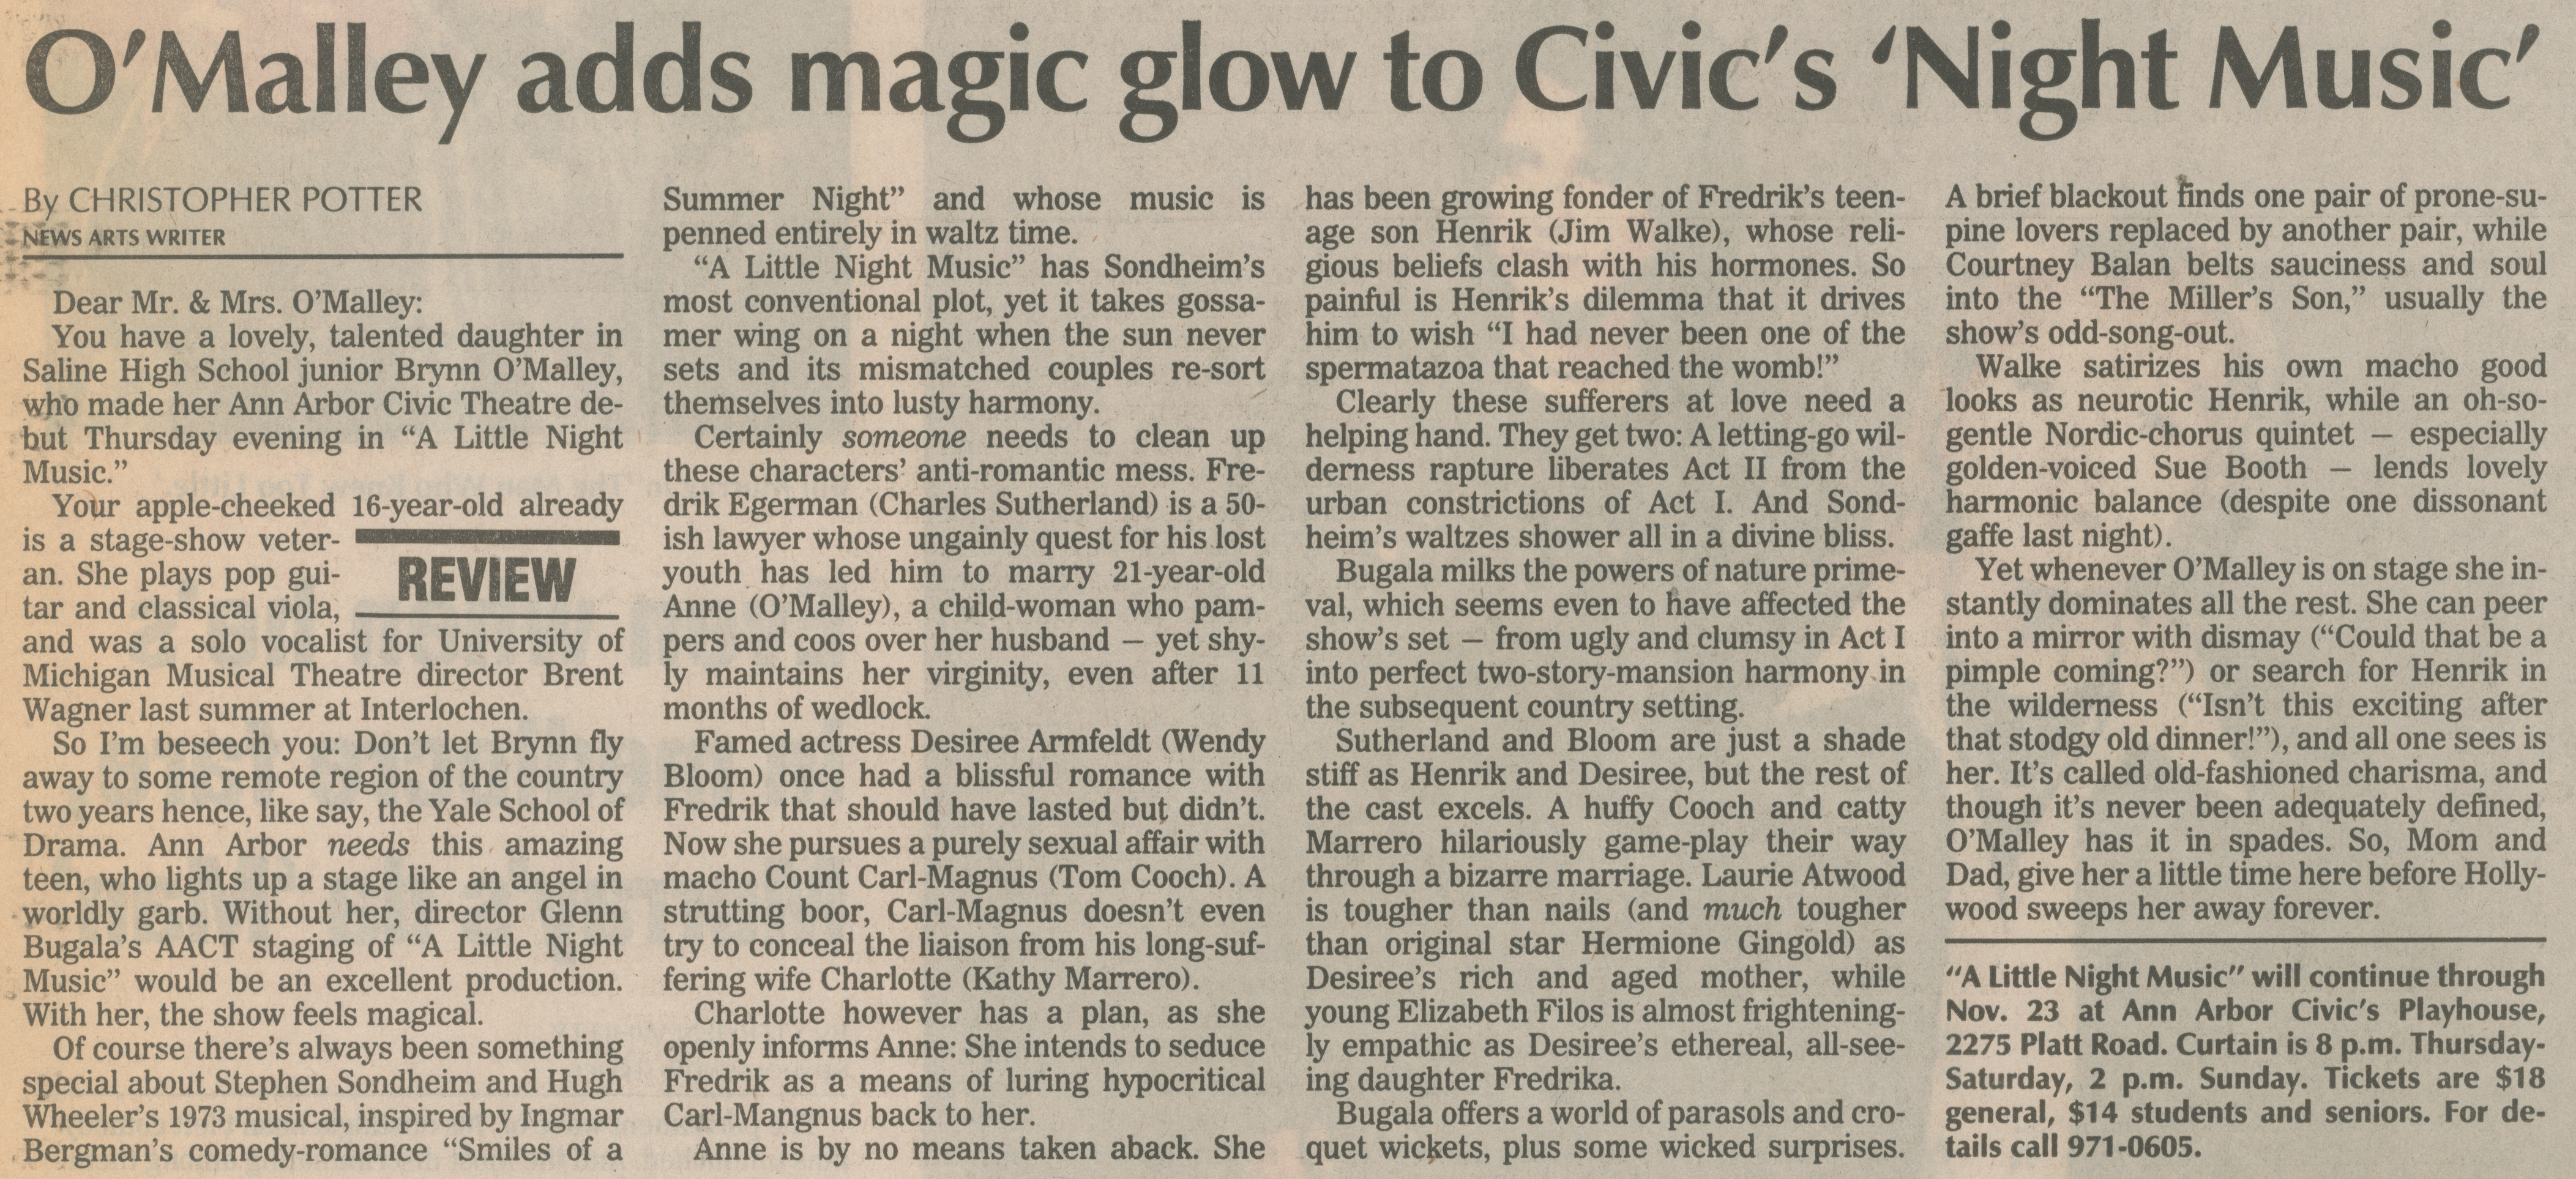 O'Malley Adds Magic Glow To Civic's 'Night Music' image